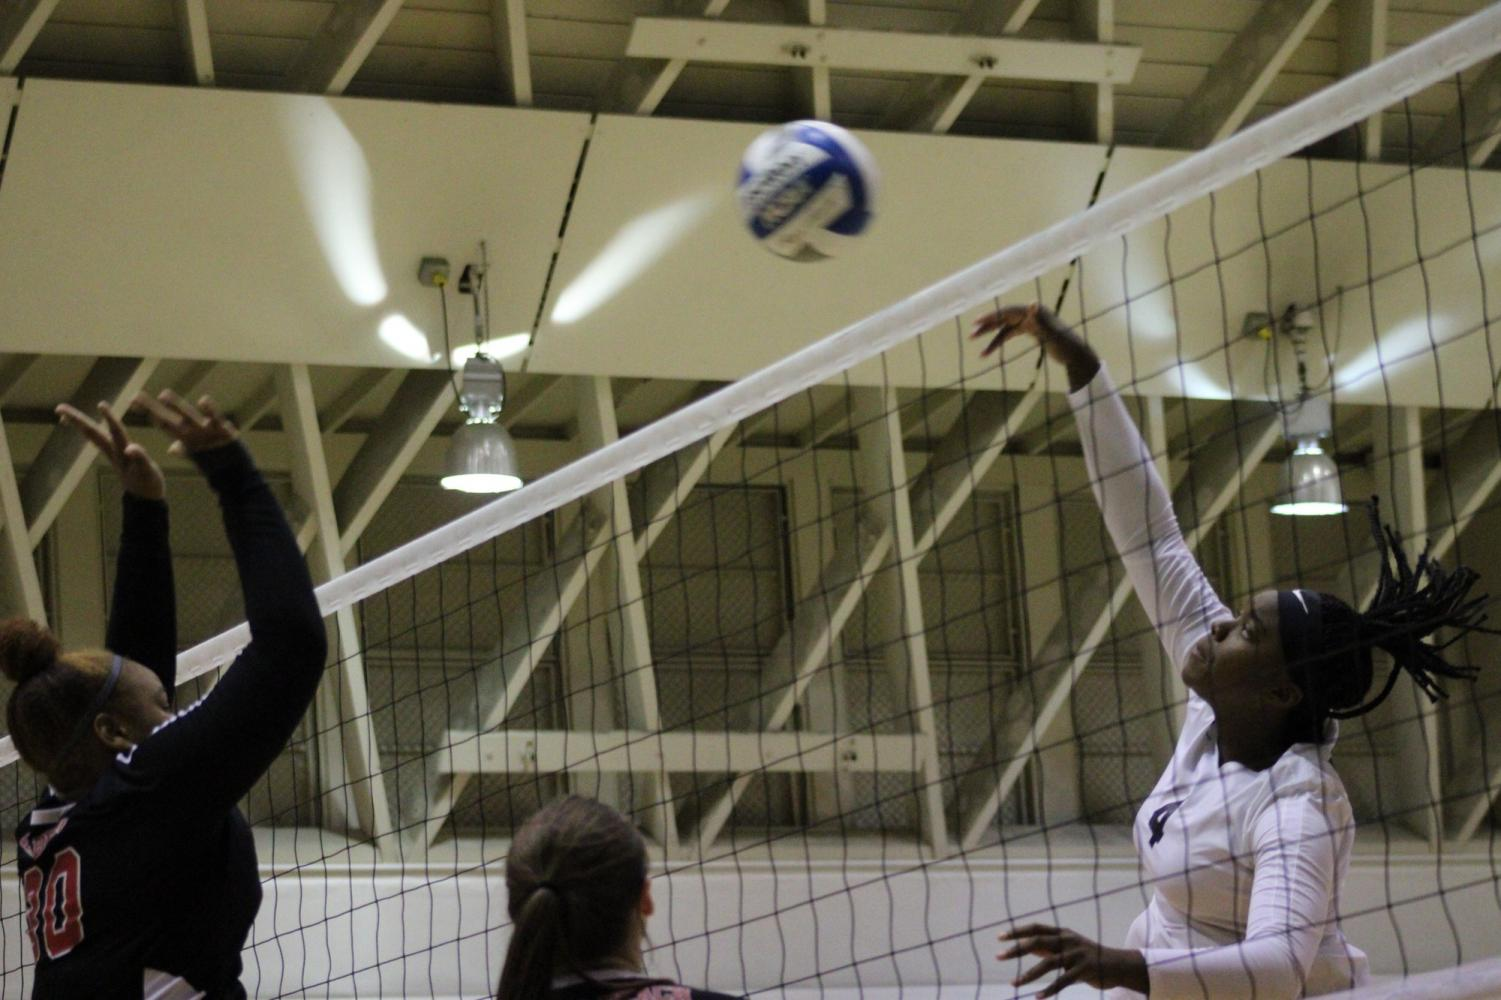 El Camino College middle blocker Ginia Goods goes for a spike against Long Beach City College middle blocker Kennedy Freeman at the net during the first set of the match on Friday, Nov. 8, in ECC's South Gym. The Warriors lost in five sets. Jaime Solis/The Union